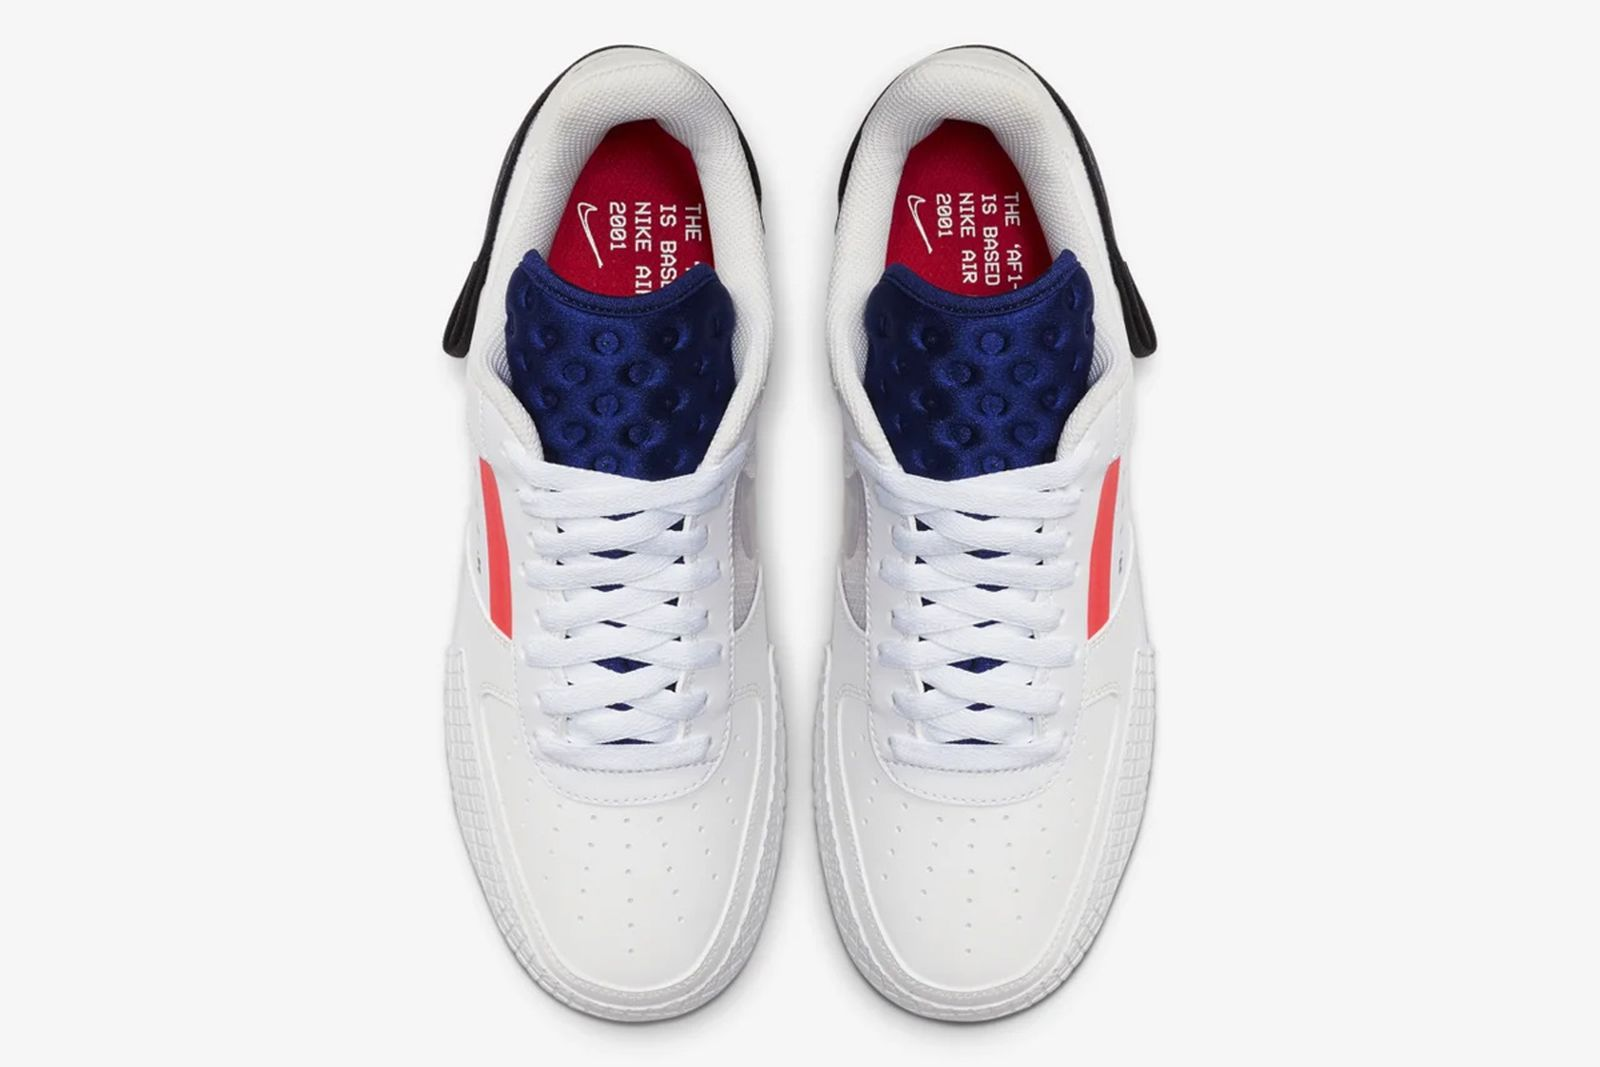 Nike Drop-Type LX & AF1-Type: Official Images & Release Info